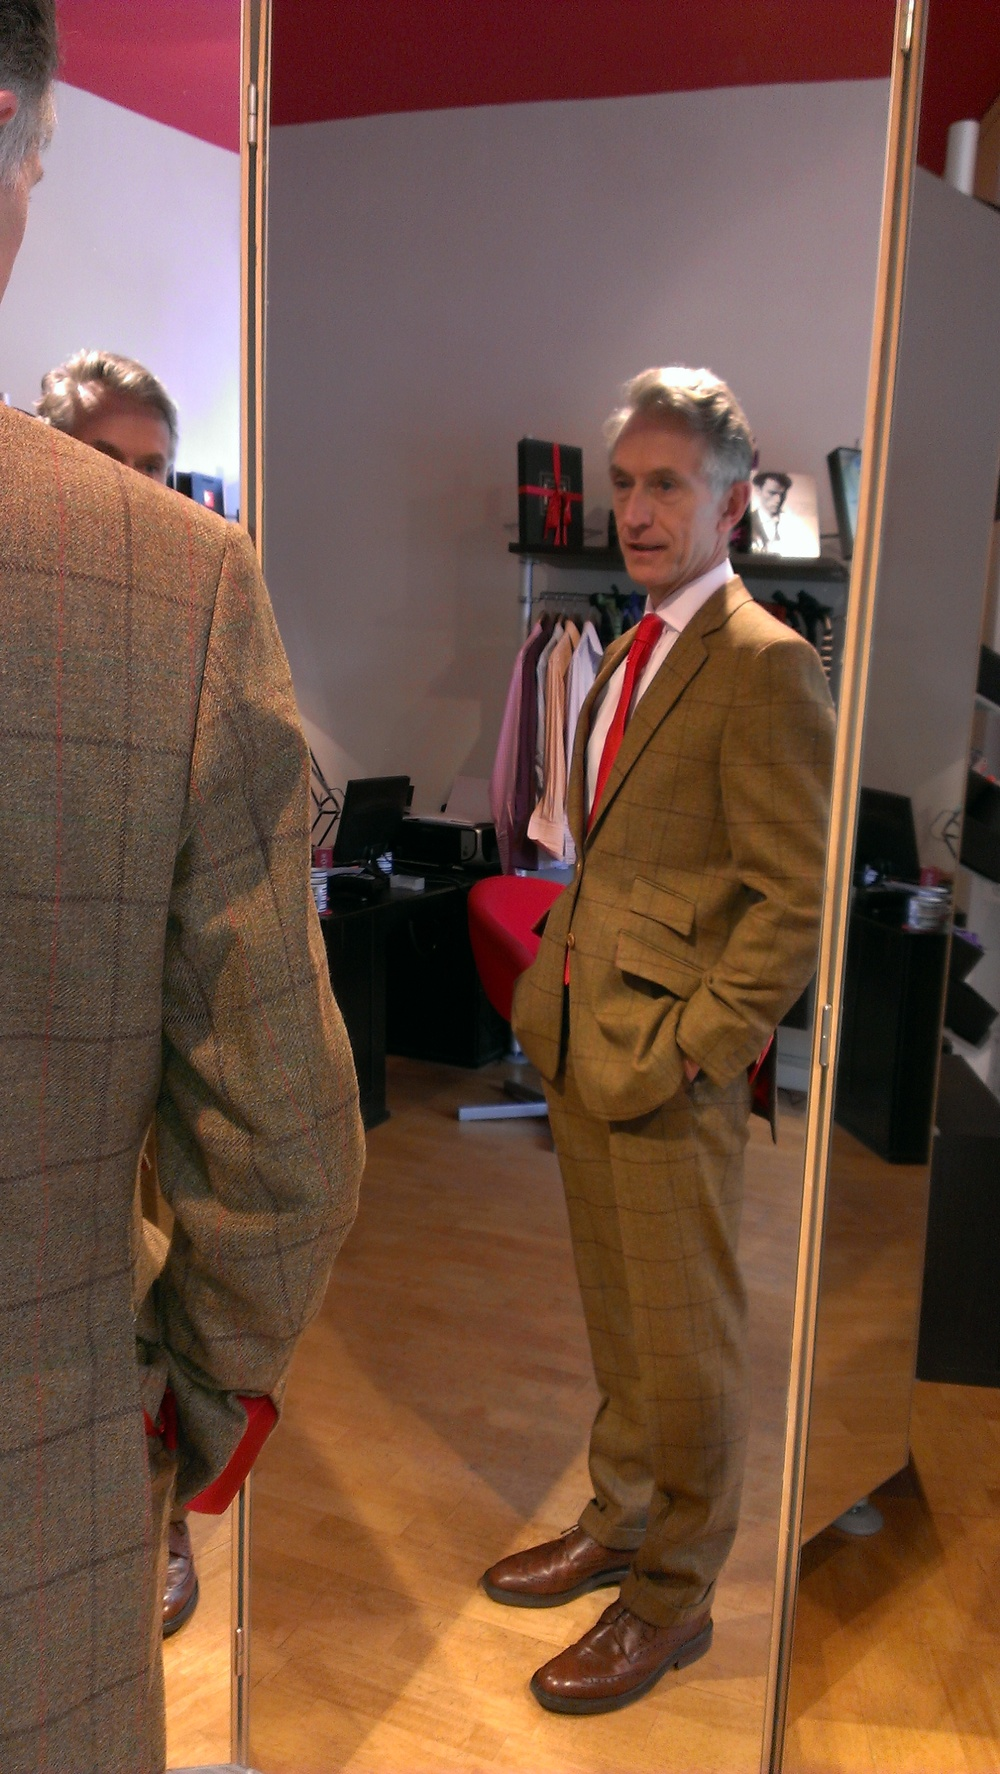 david-evans-grey-fox-hunters-tweed-bespoke-three-piece-suit-all-uk-made.jpg